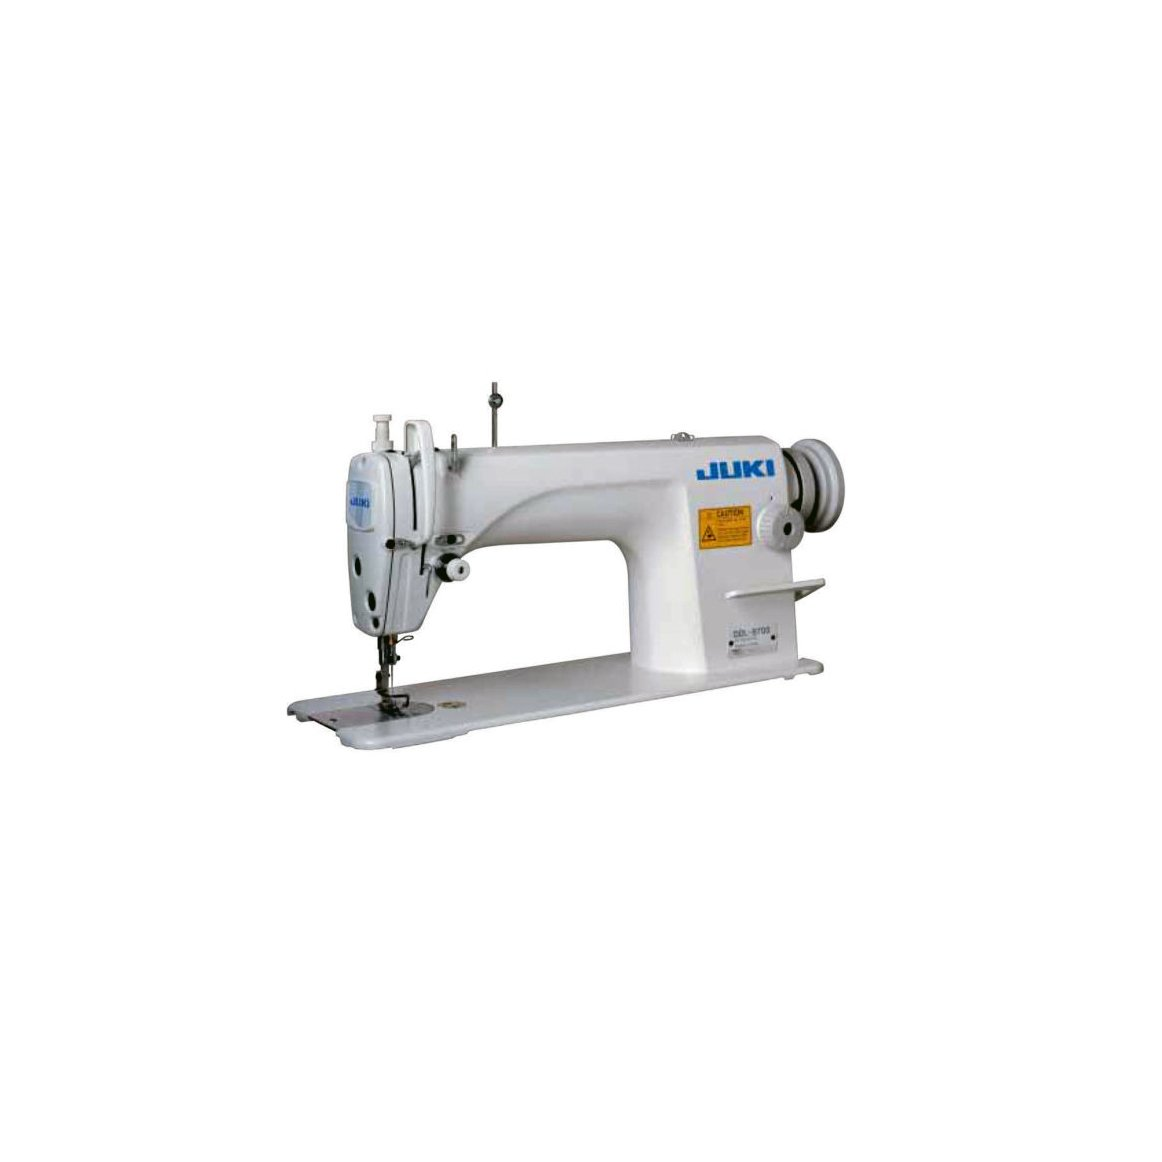 DDL-8700 Juki Industrial Sewer Sewing Machine